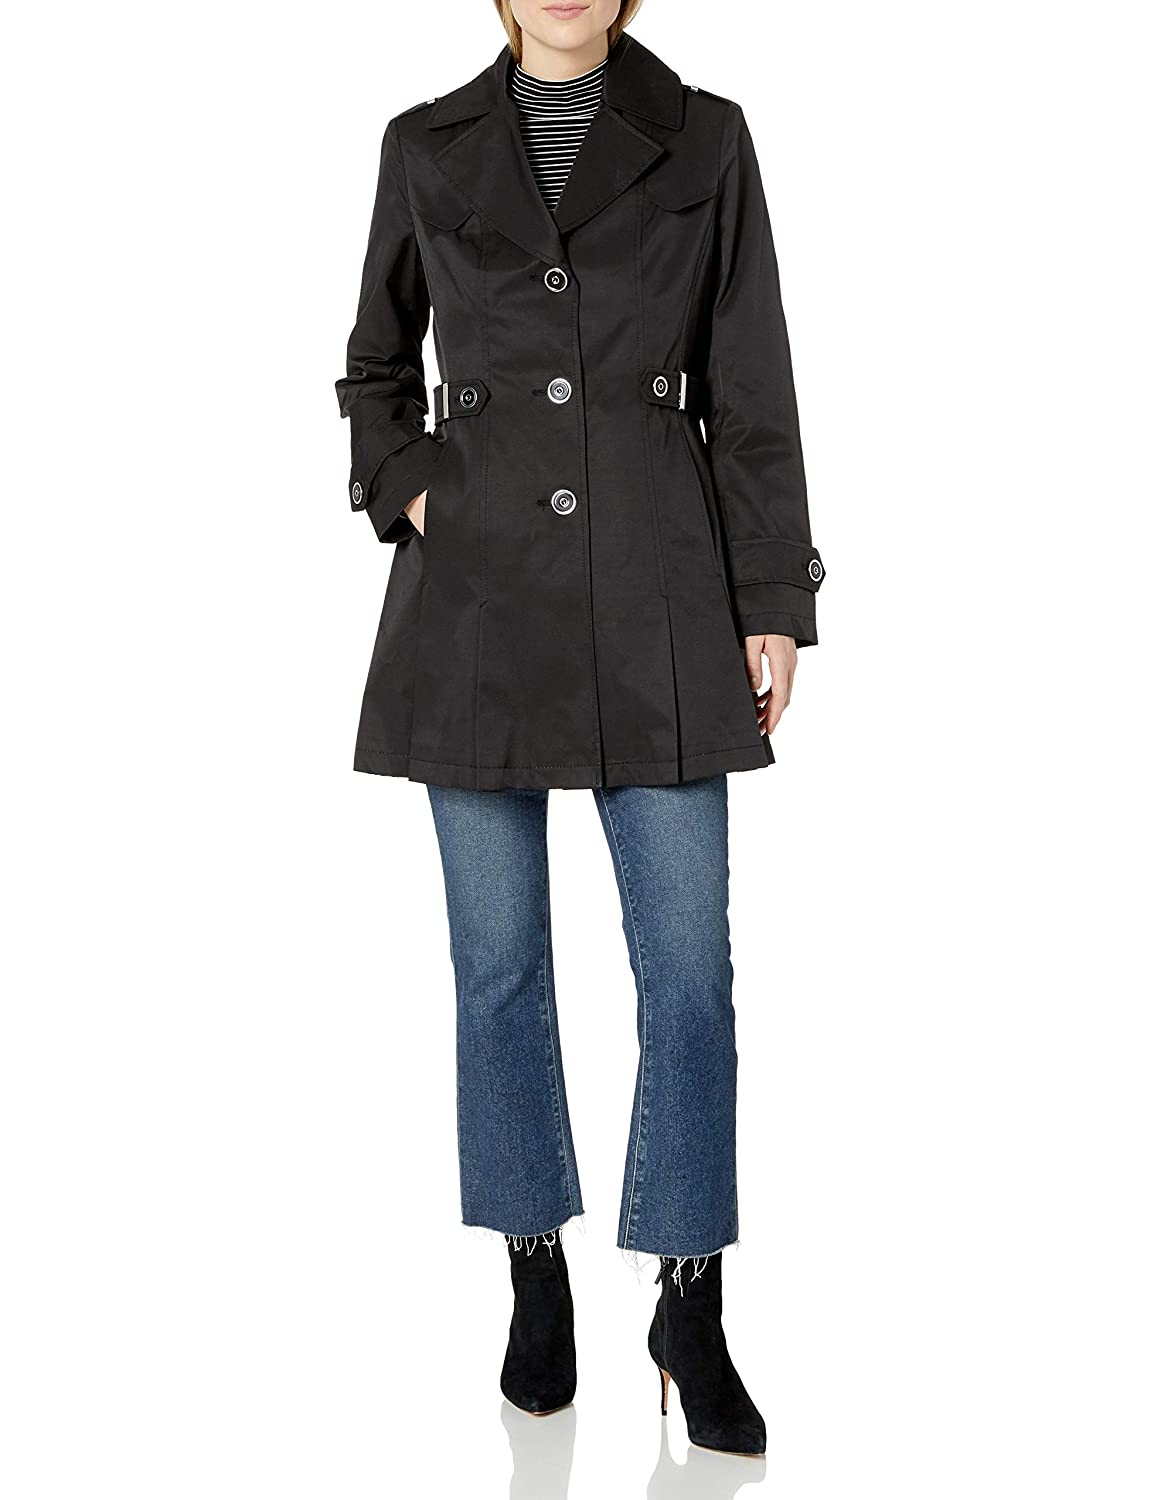 Via Spiga Womens Single-Breasted Pleated Trench Coat